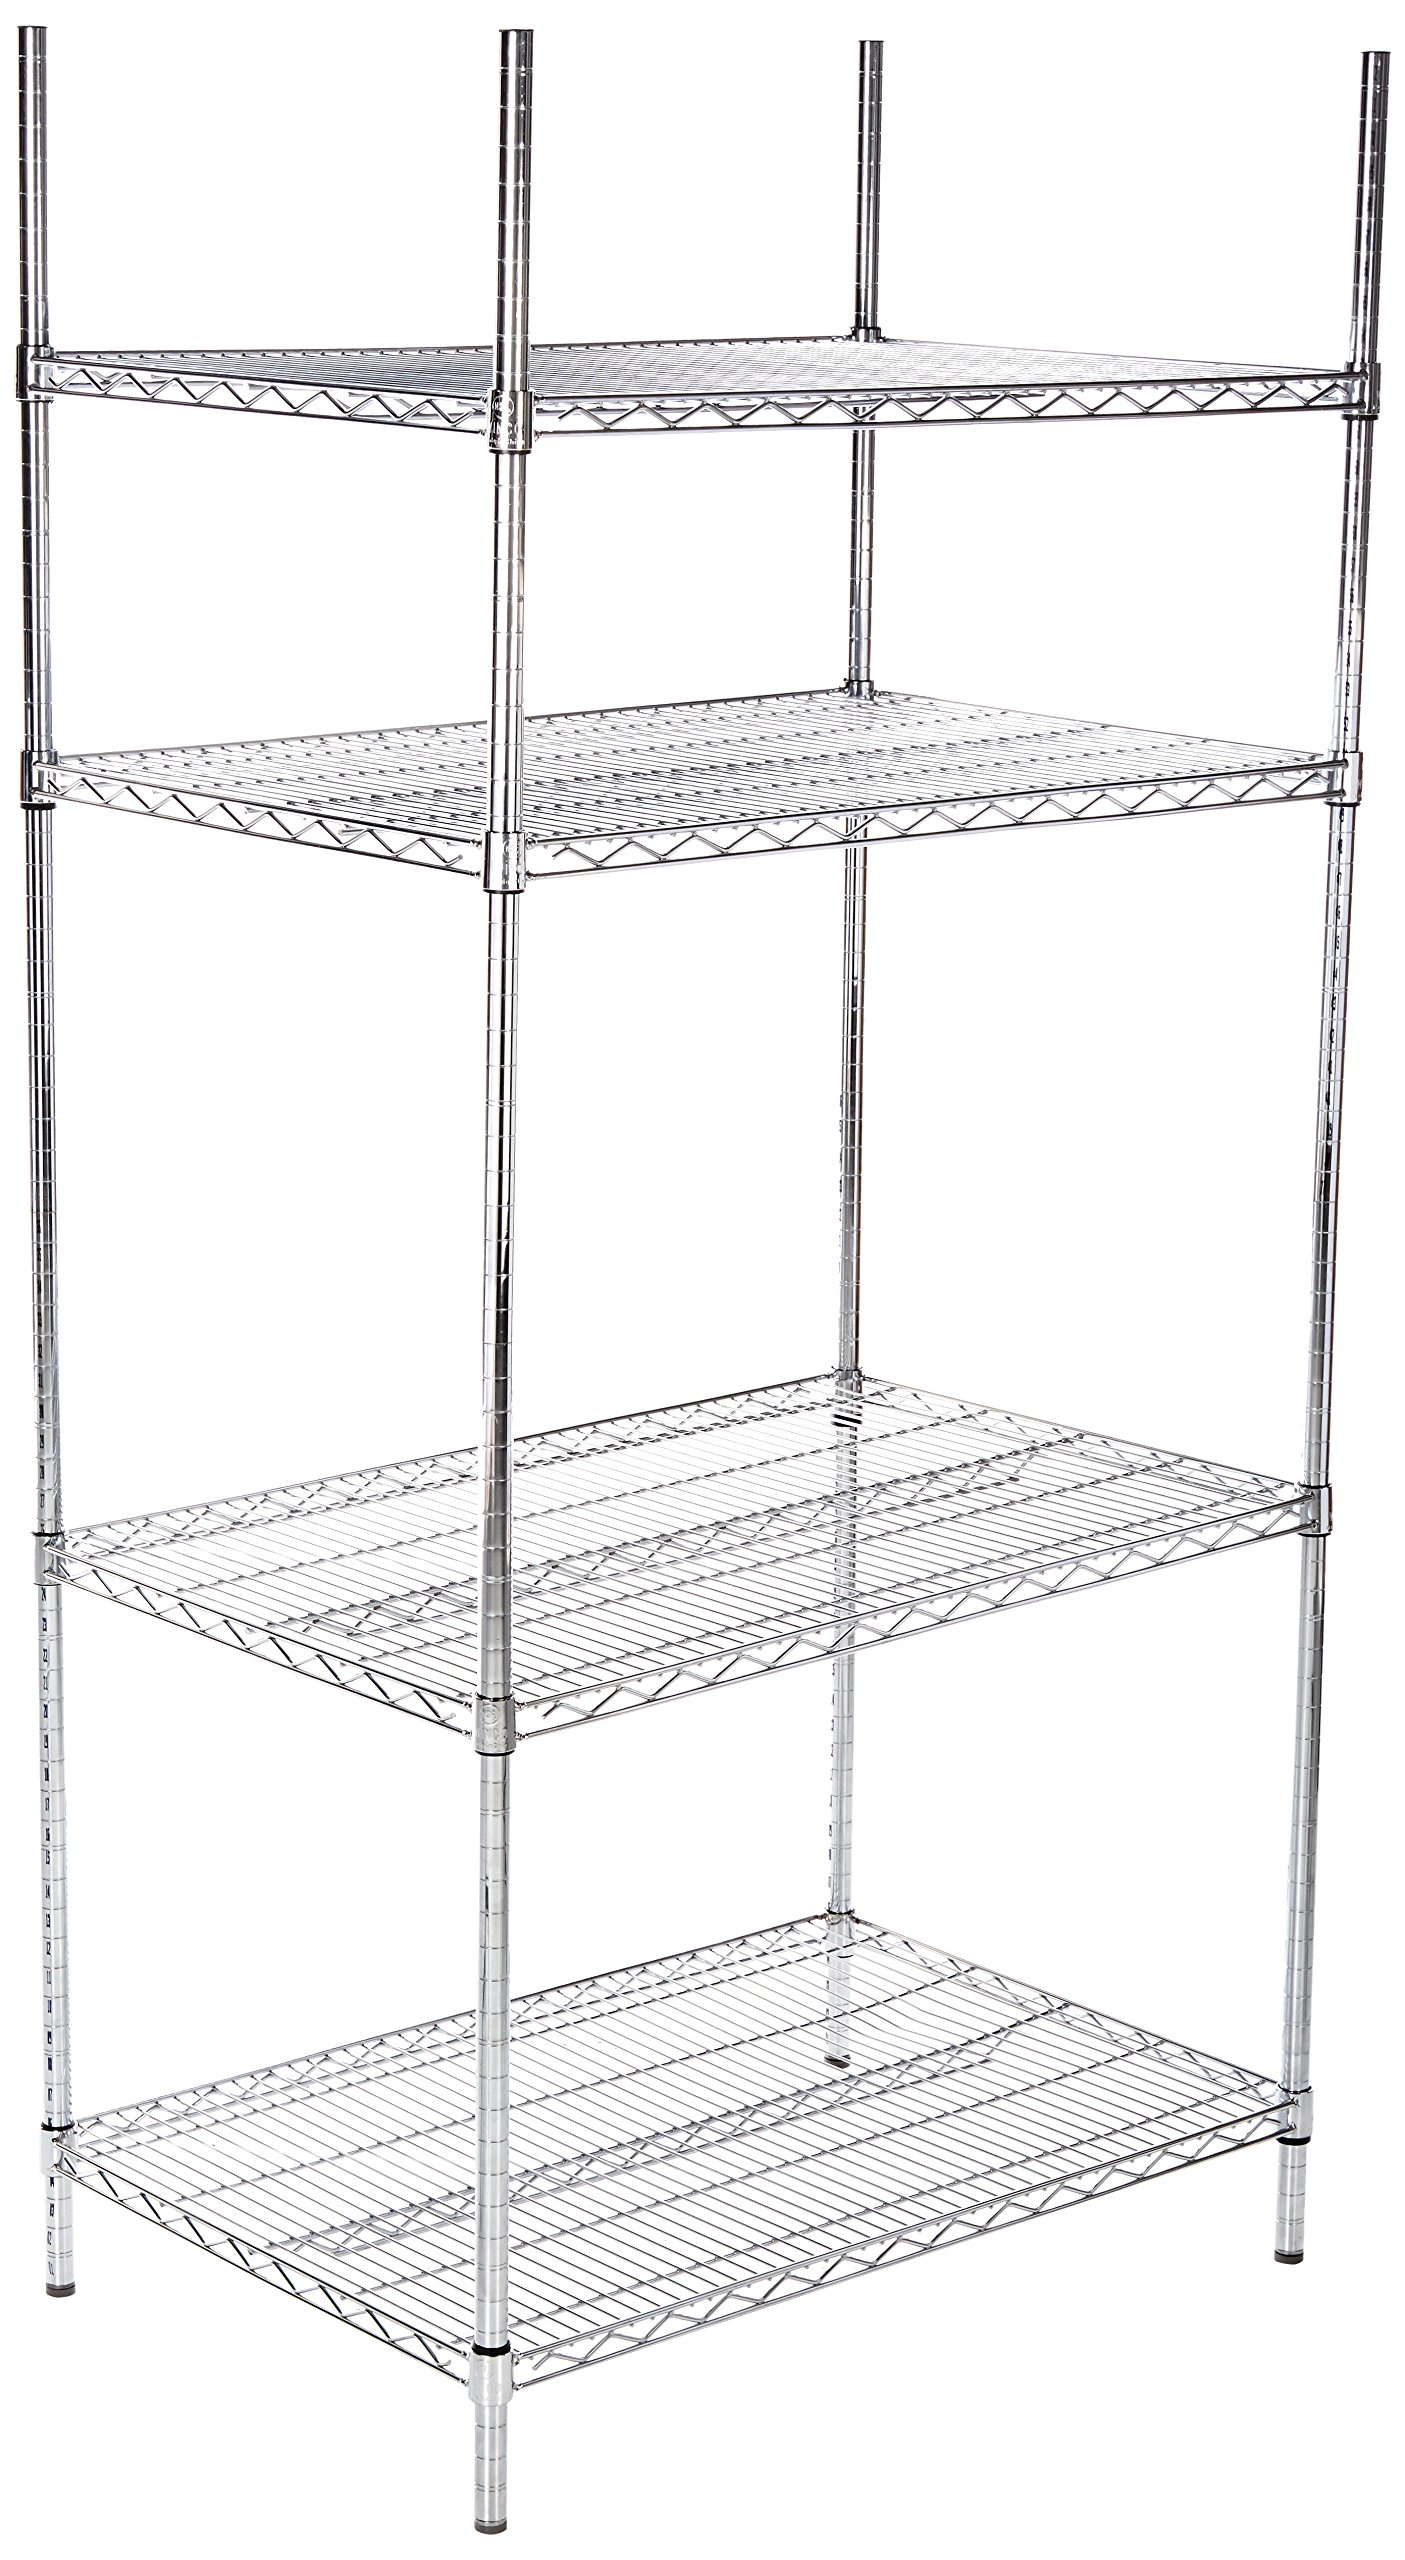 Winco VCS-2436 4-Tier Wire Shelving Set, Chrome Plated, 24'' X 36'' X 72''